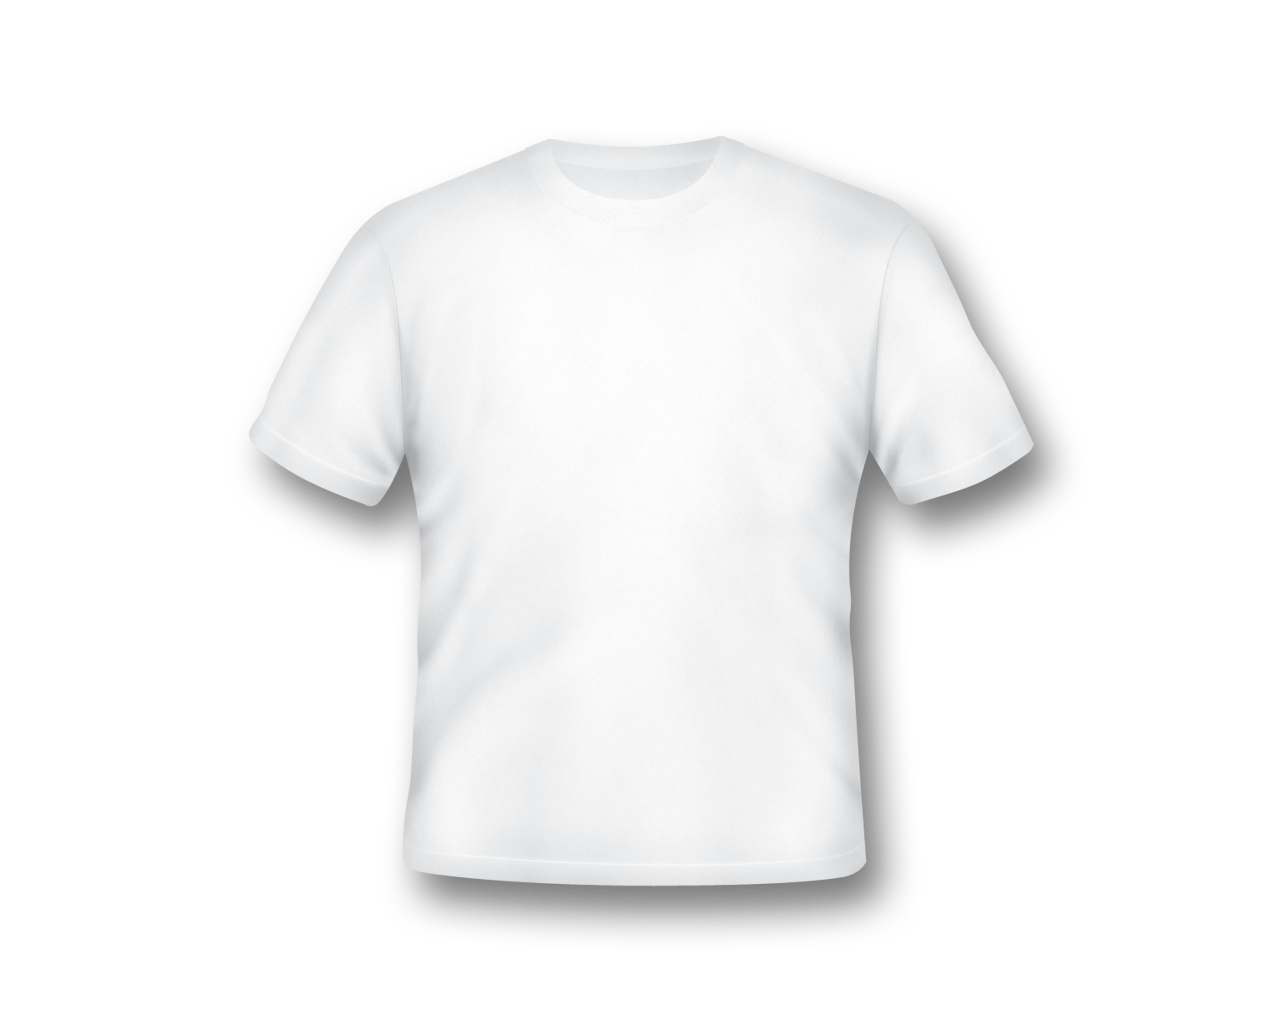 Clipart Best Blank T Shirt Png image #30252